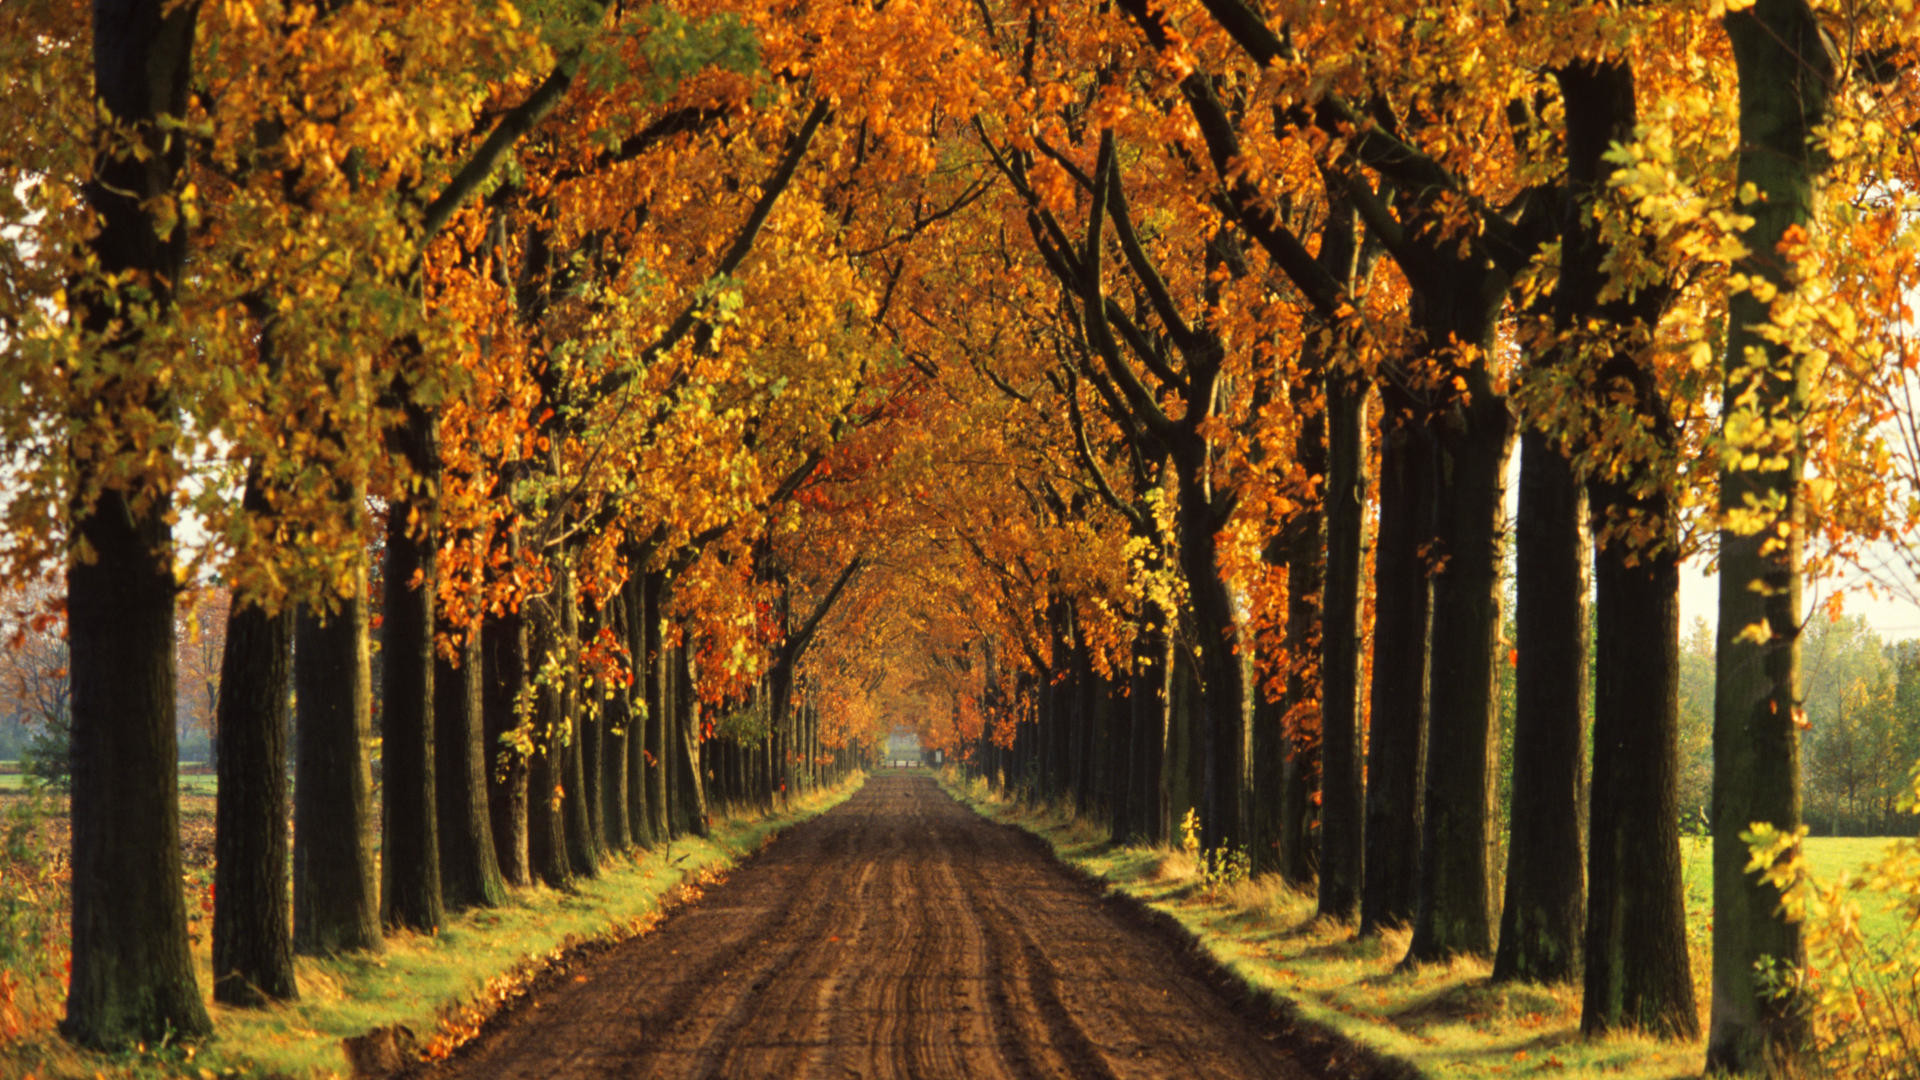 fall tumblr backgrounds trees hd 67612 loadtve